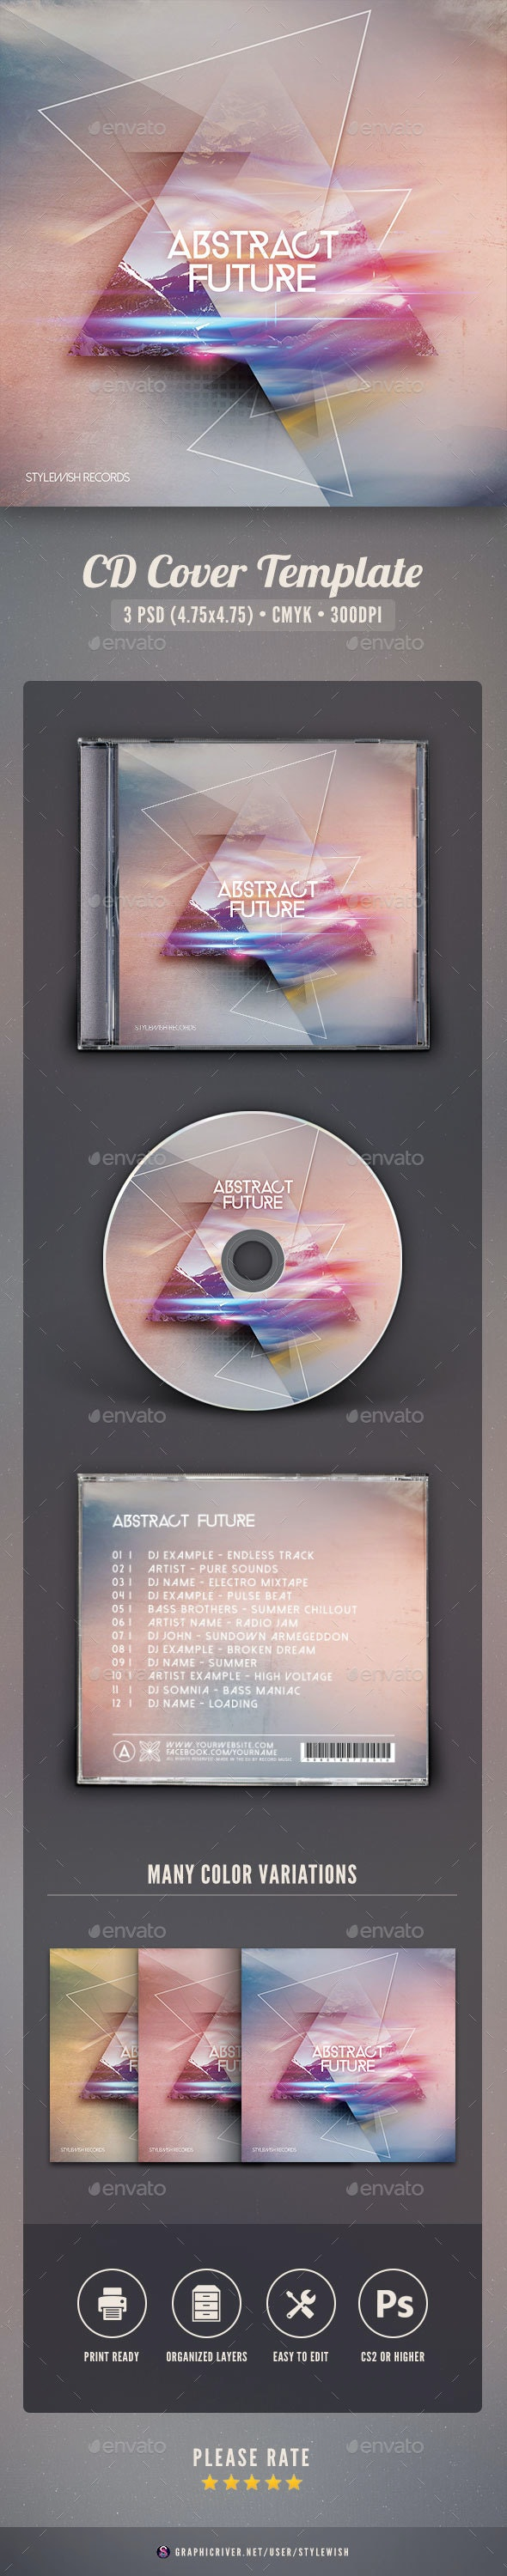 Abstract Future CD Cover Artwork - CD & DVD Artwork Print Templates